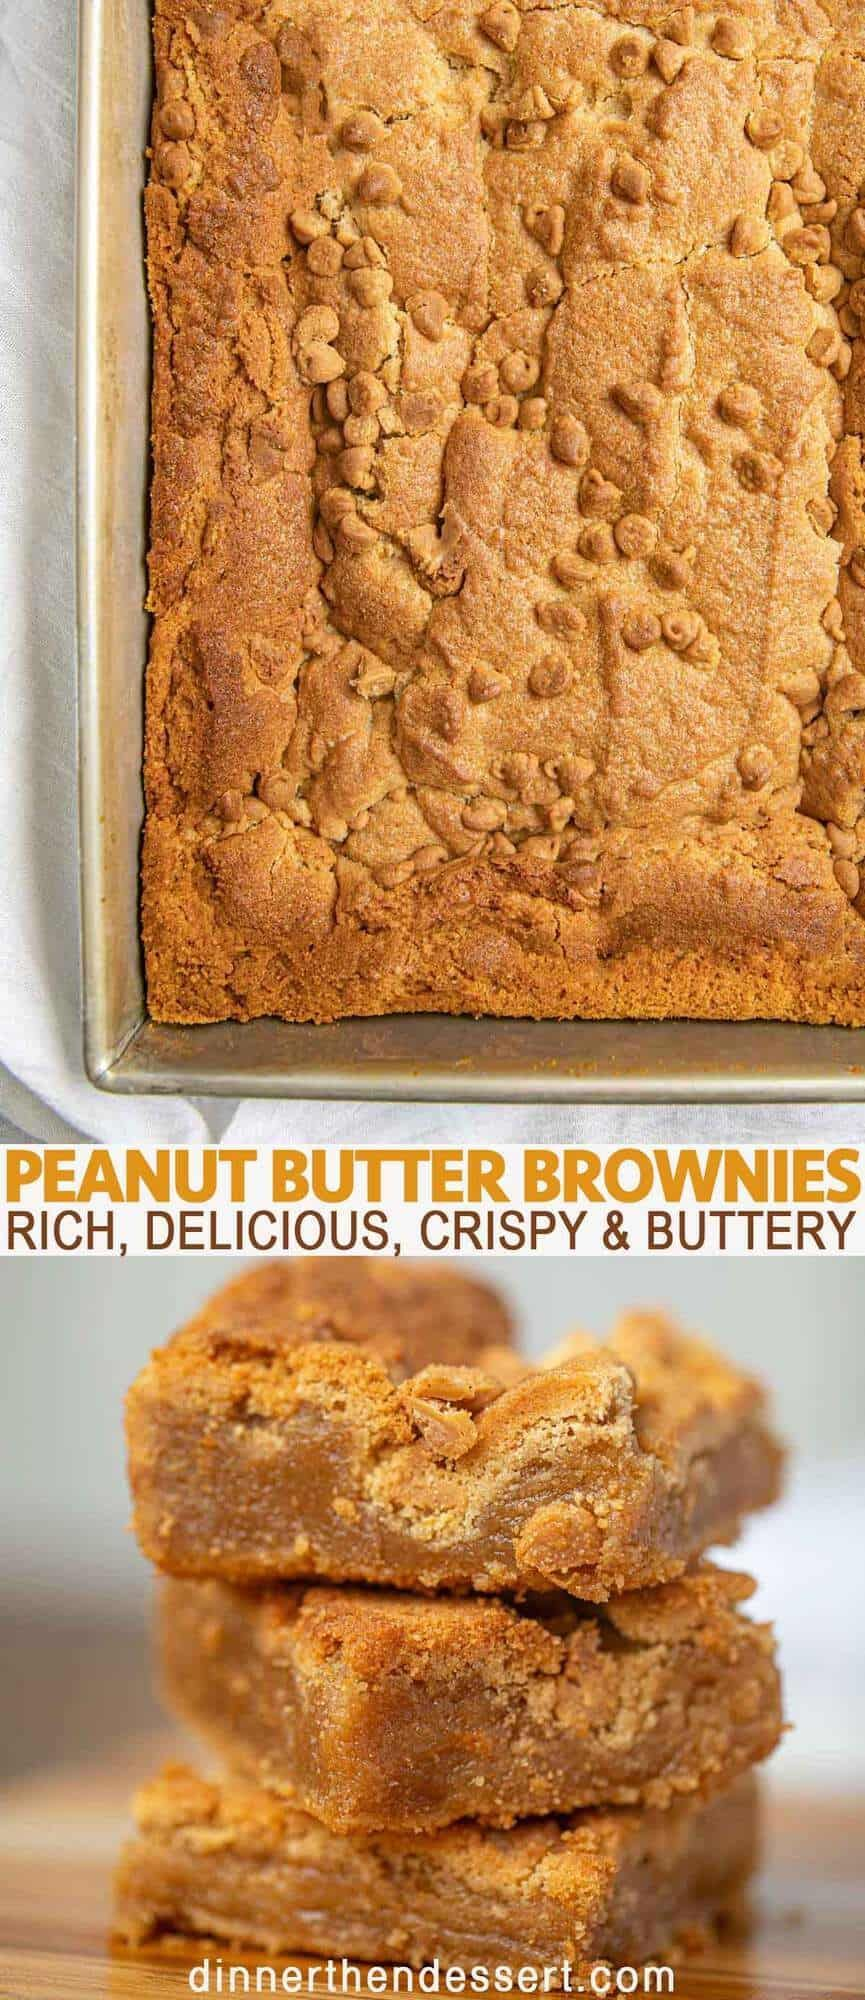 The BEST Ever Peanut Butter Brownies - Dinner, then Dessert -  Peanut butter brownies are rich, del